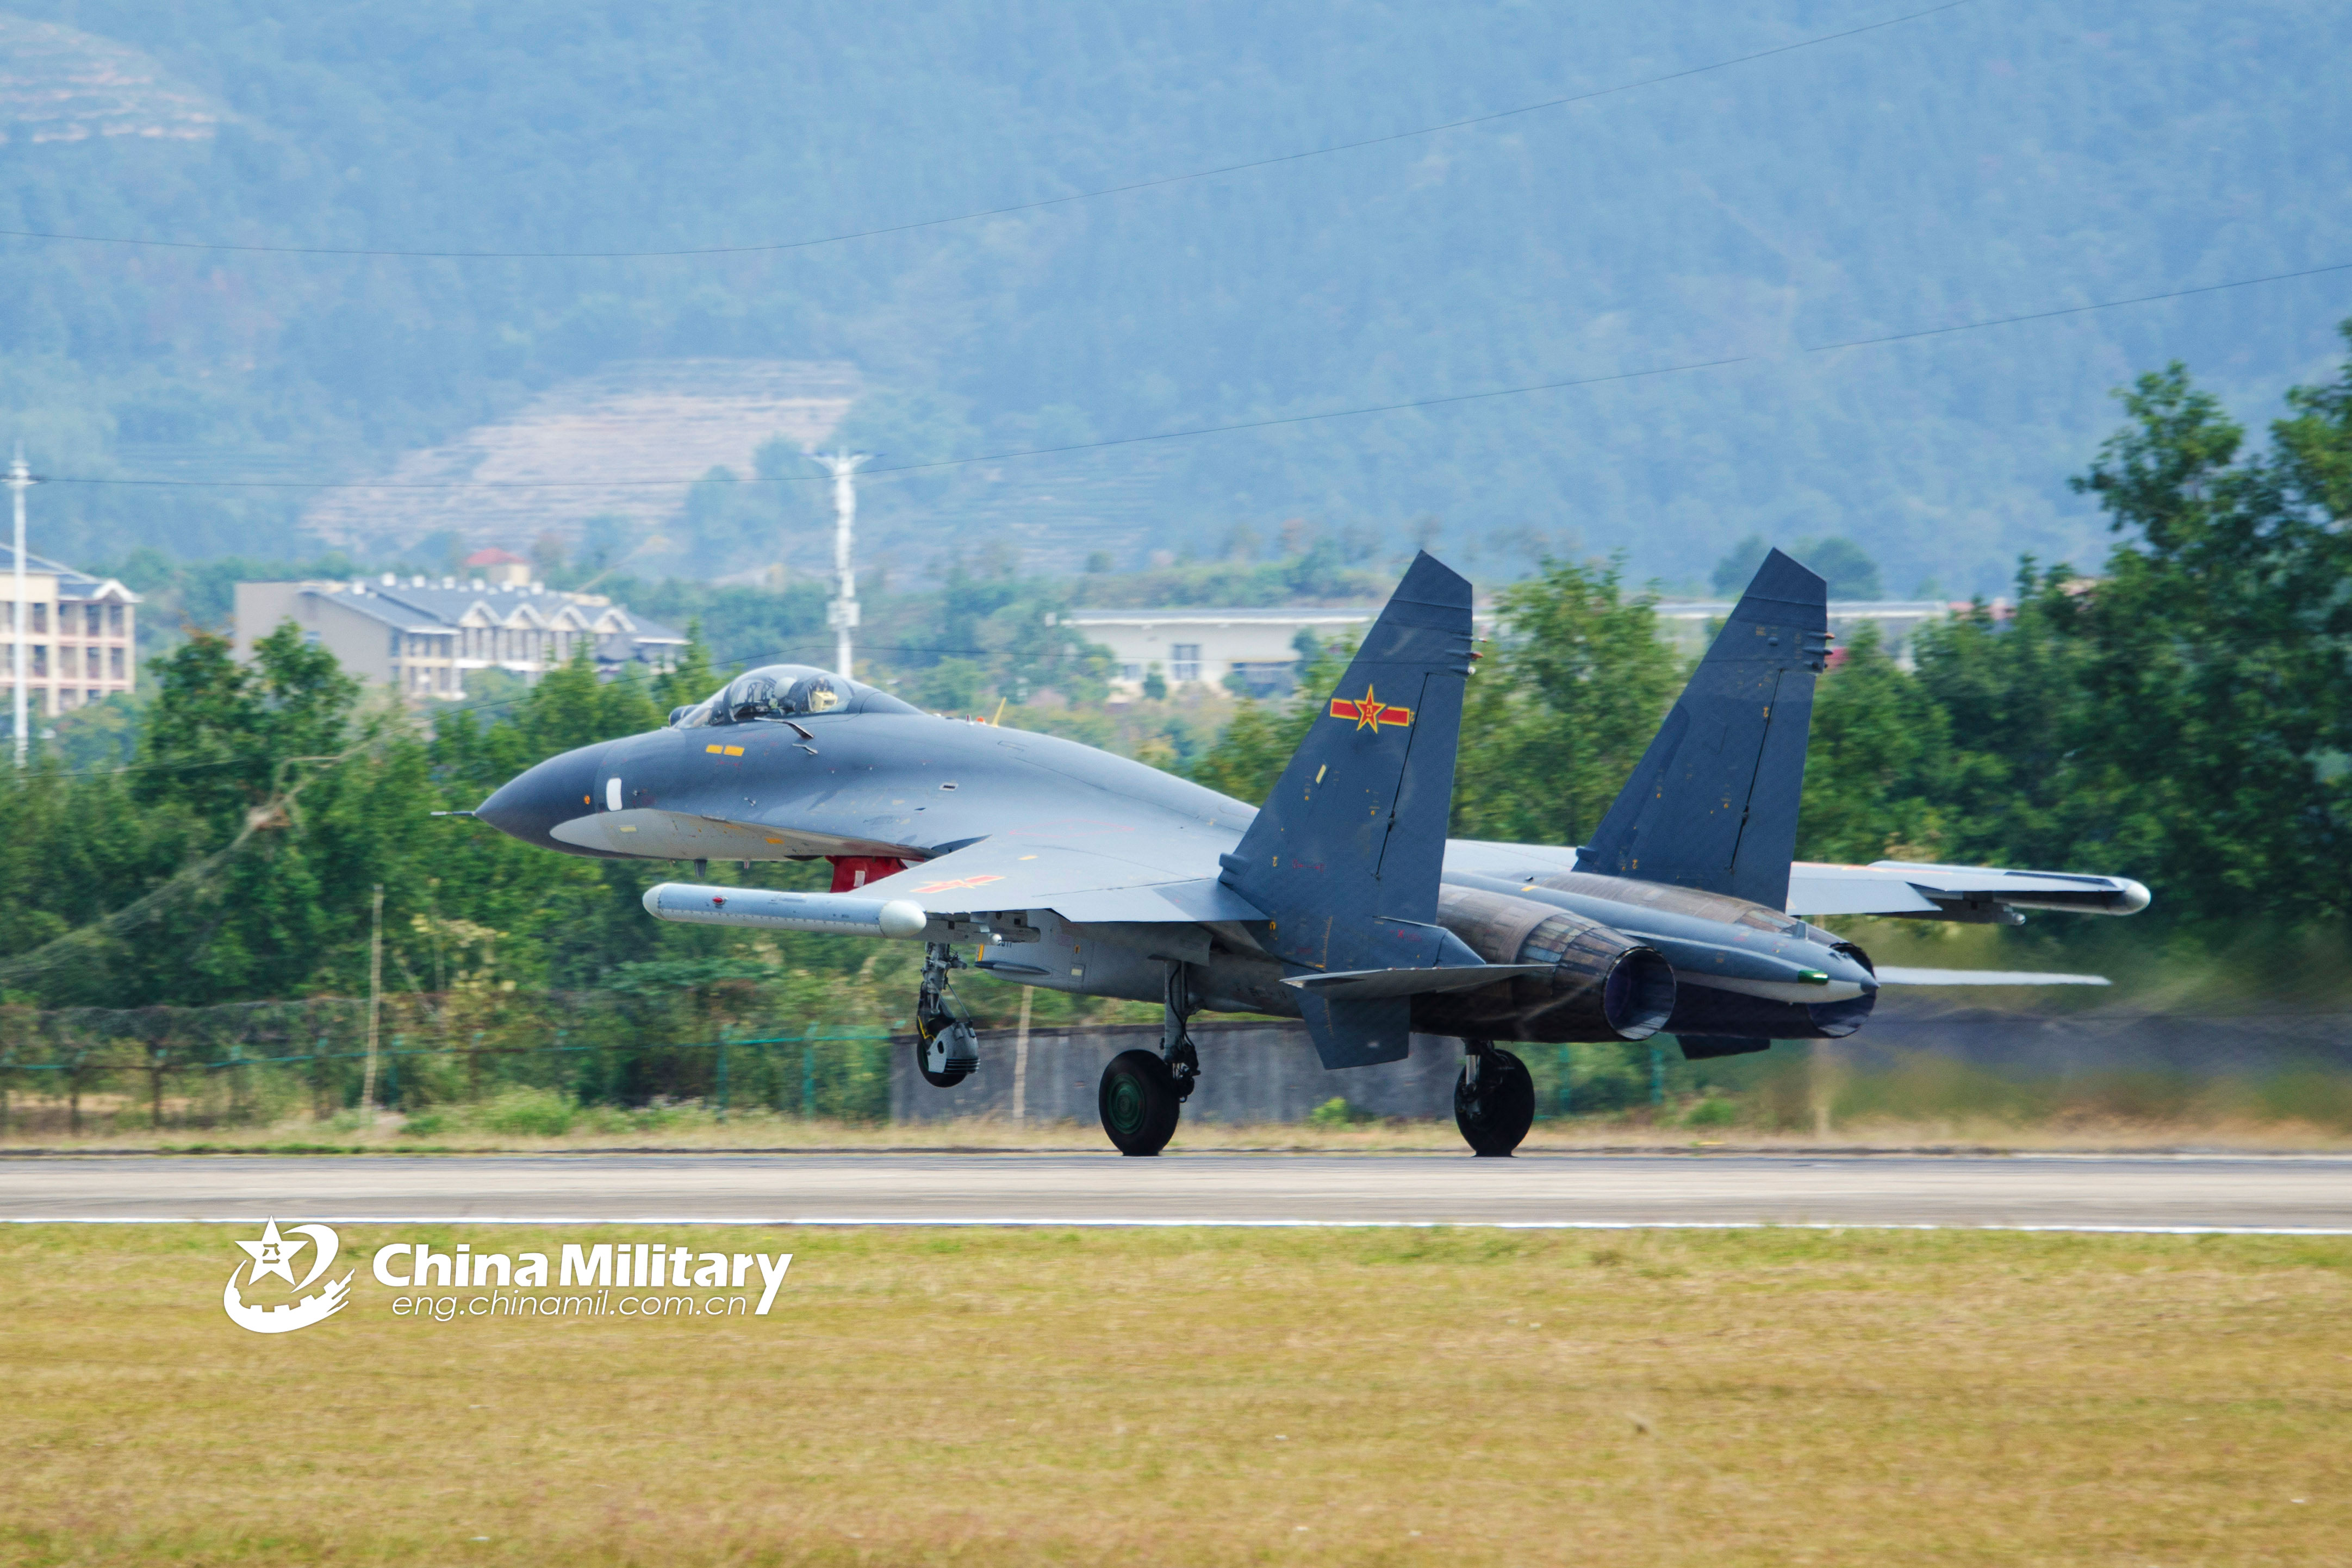 J-11 fighter jet takes off for training - China Military